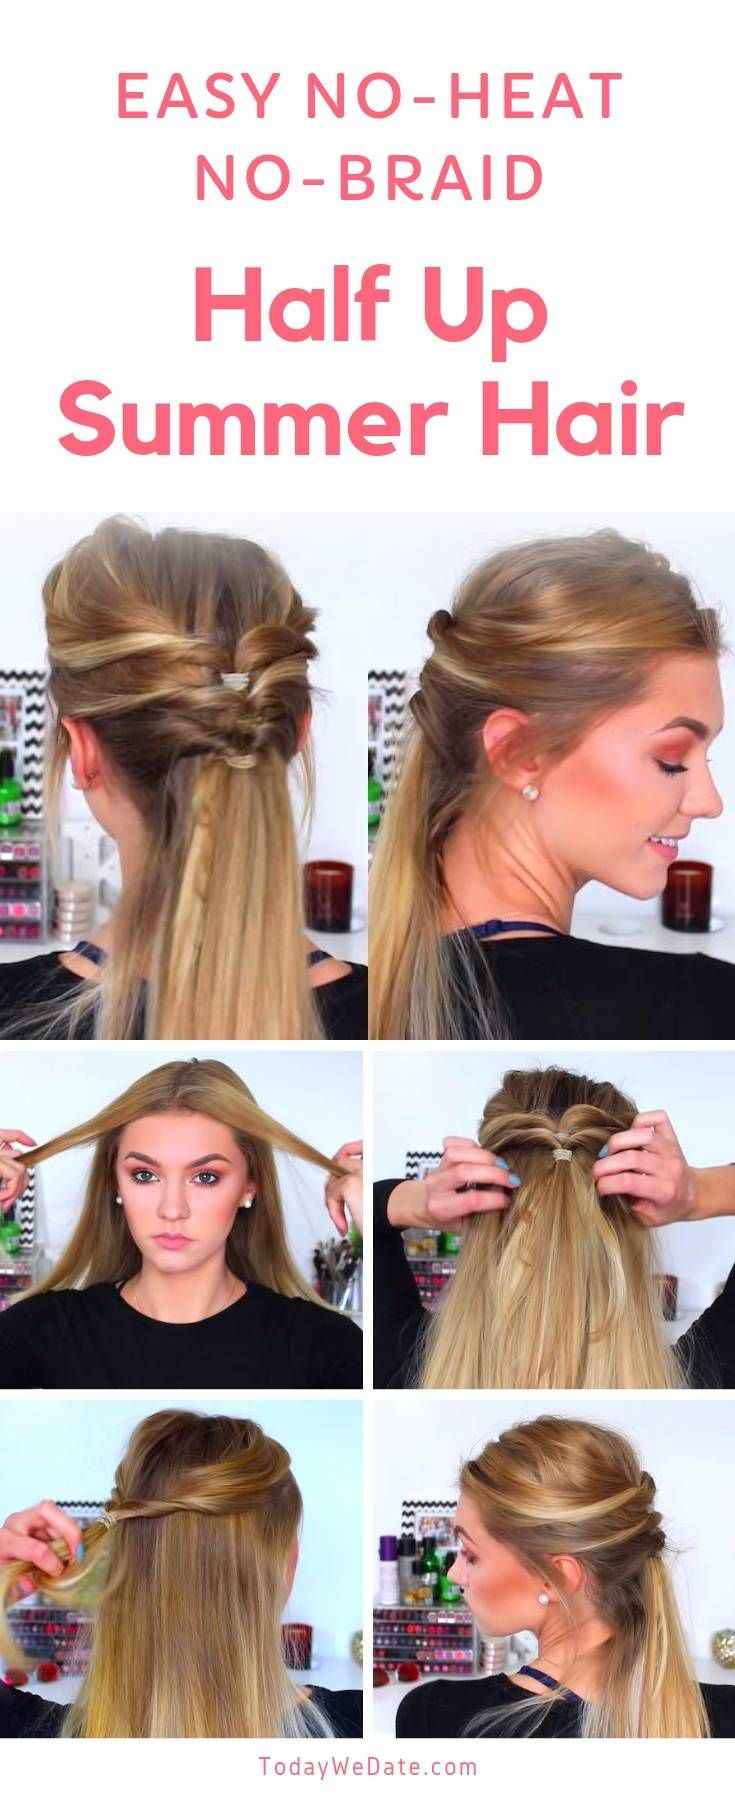 12 No-heat Easy Summer Hairstyles Anyone Can Pull Off In 12 Minutes